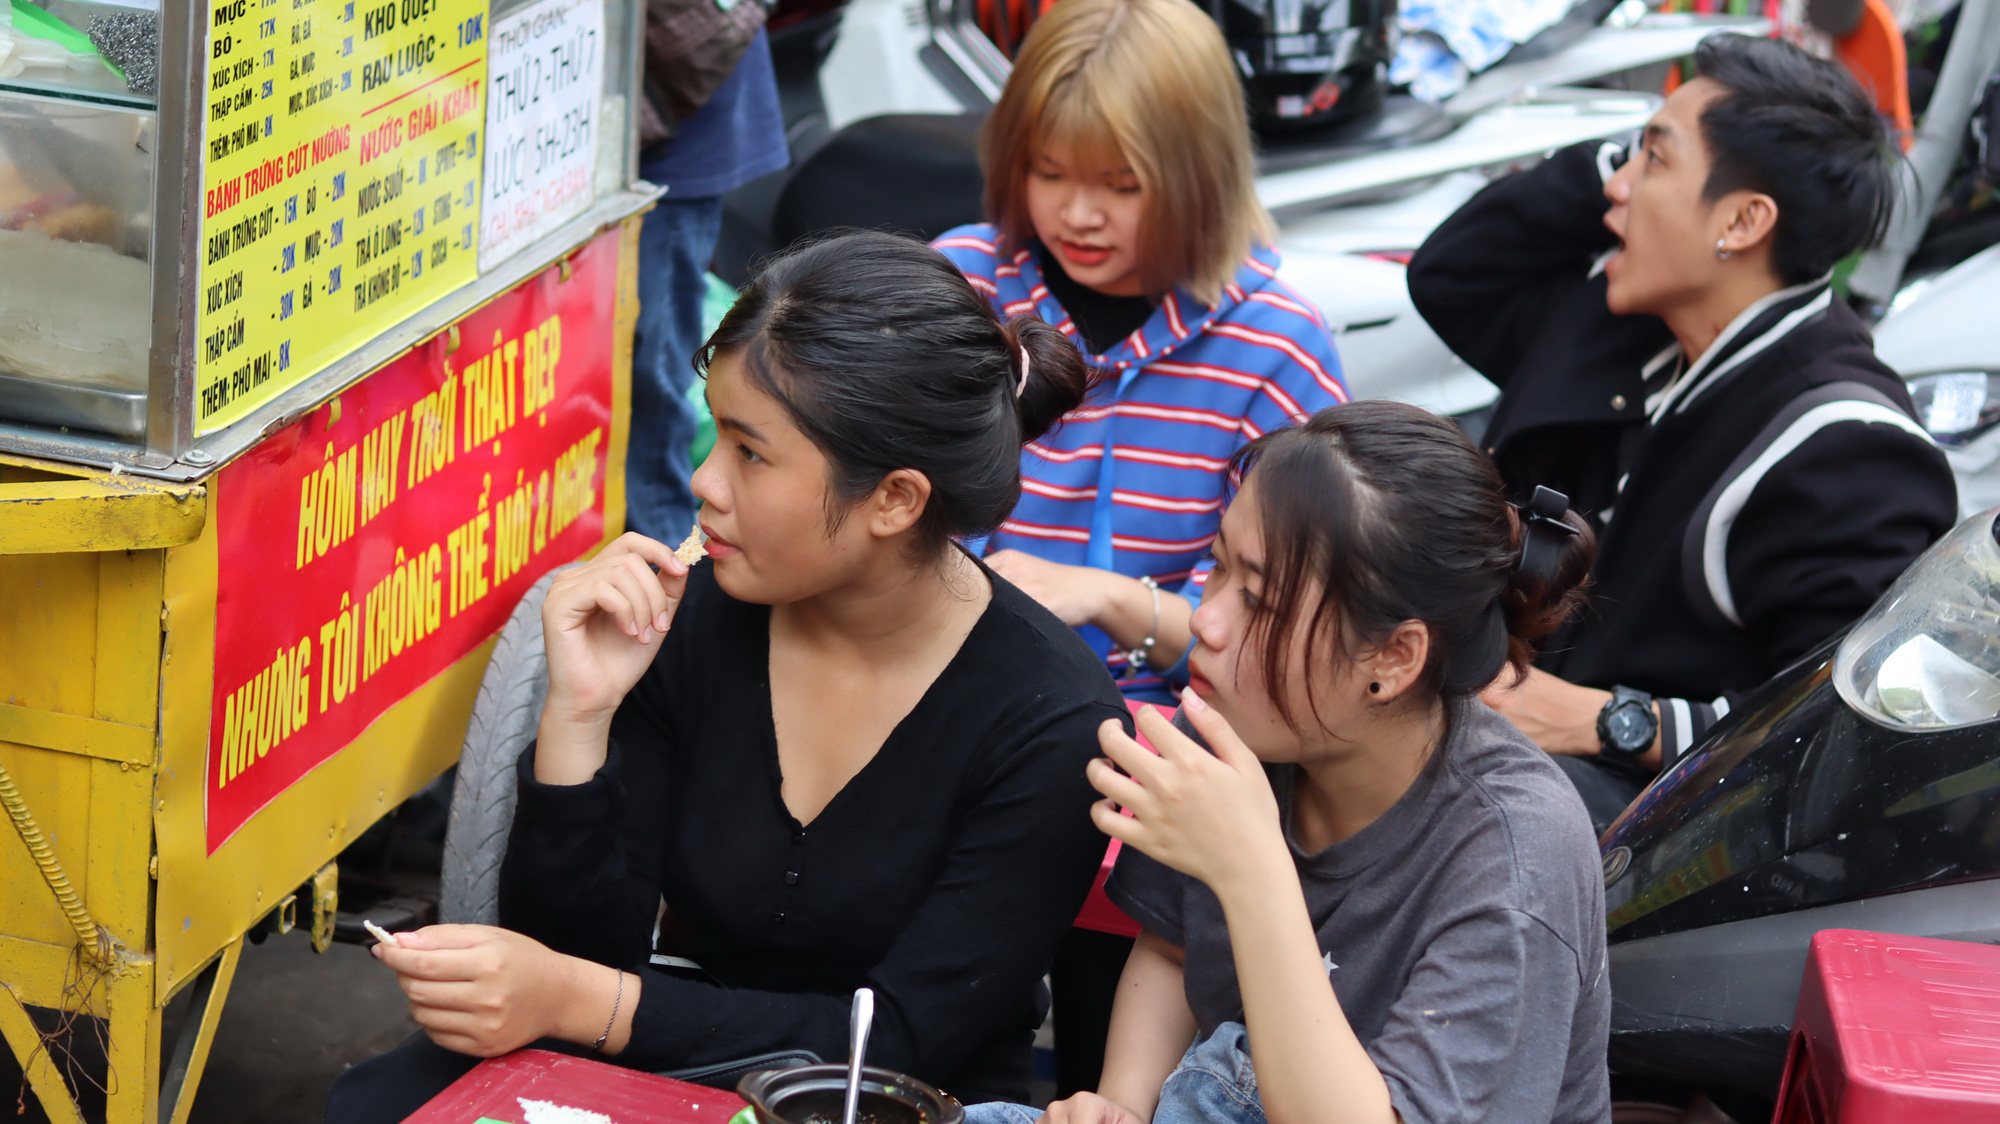 Young street food fans show interest in the savory snacks and the sign that reads 'The weather is really nice today, but I cannot speak or hear' at Le Truong Son and Le Mong Thuy's stall, placed in Binh Thanh District, Ho Chi Minh City, Vietnam. Photo: Le Van / Tuoi Tre